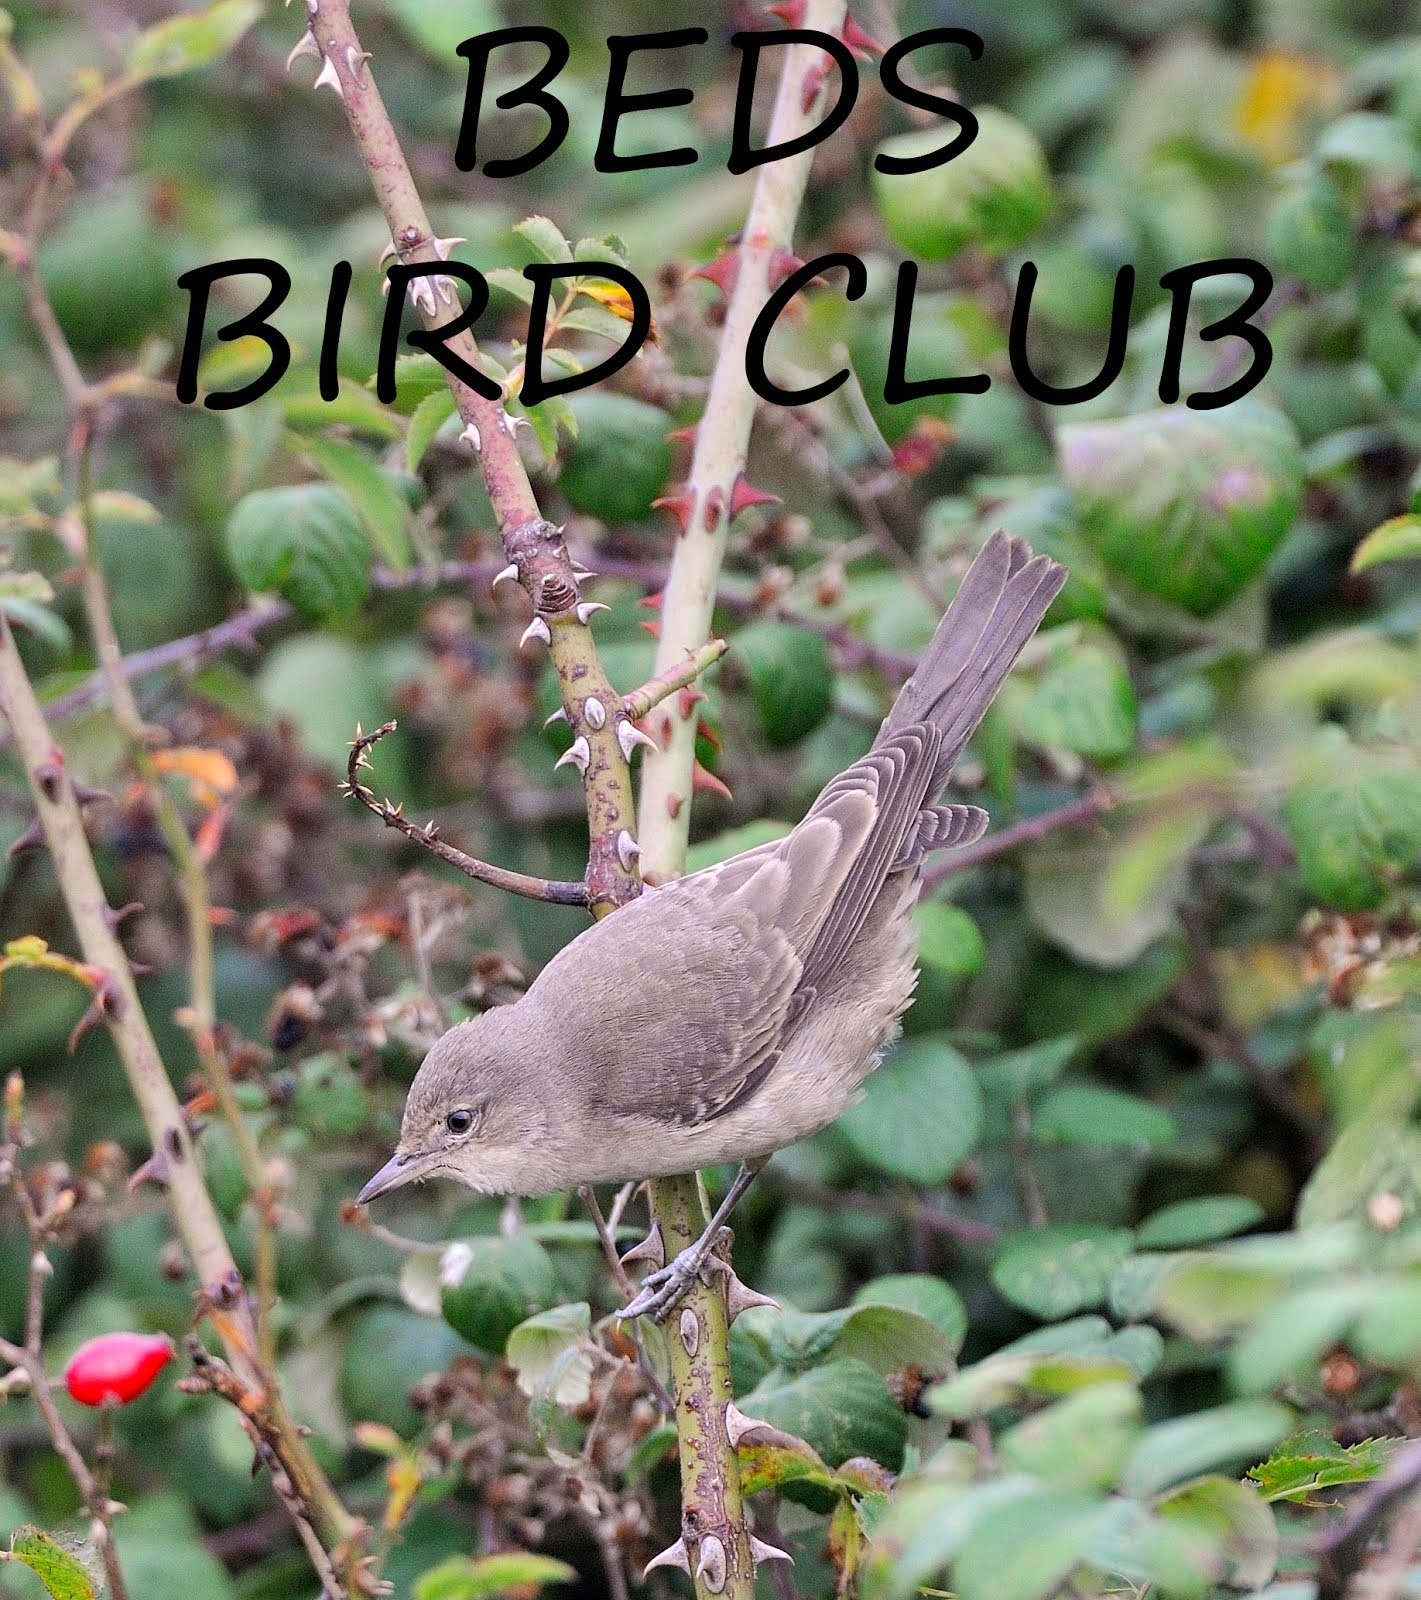 Beds Bird Club